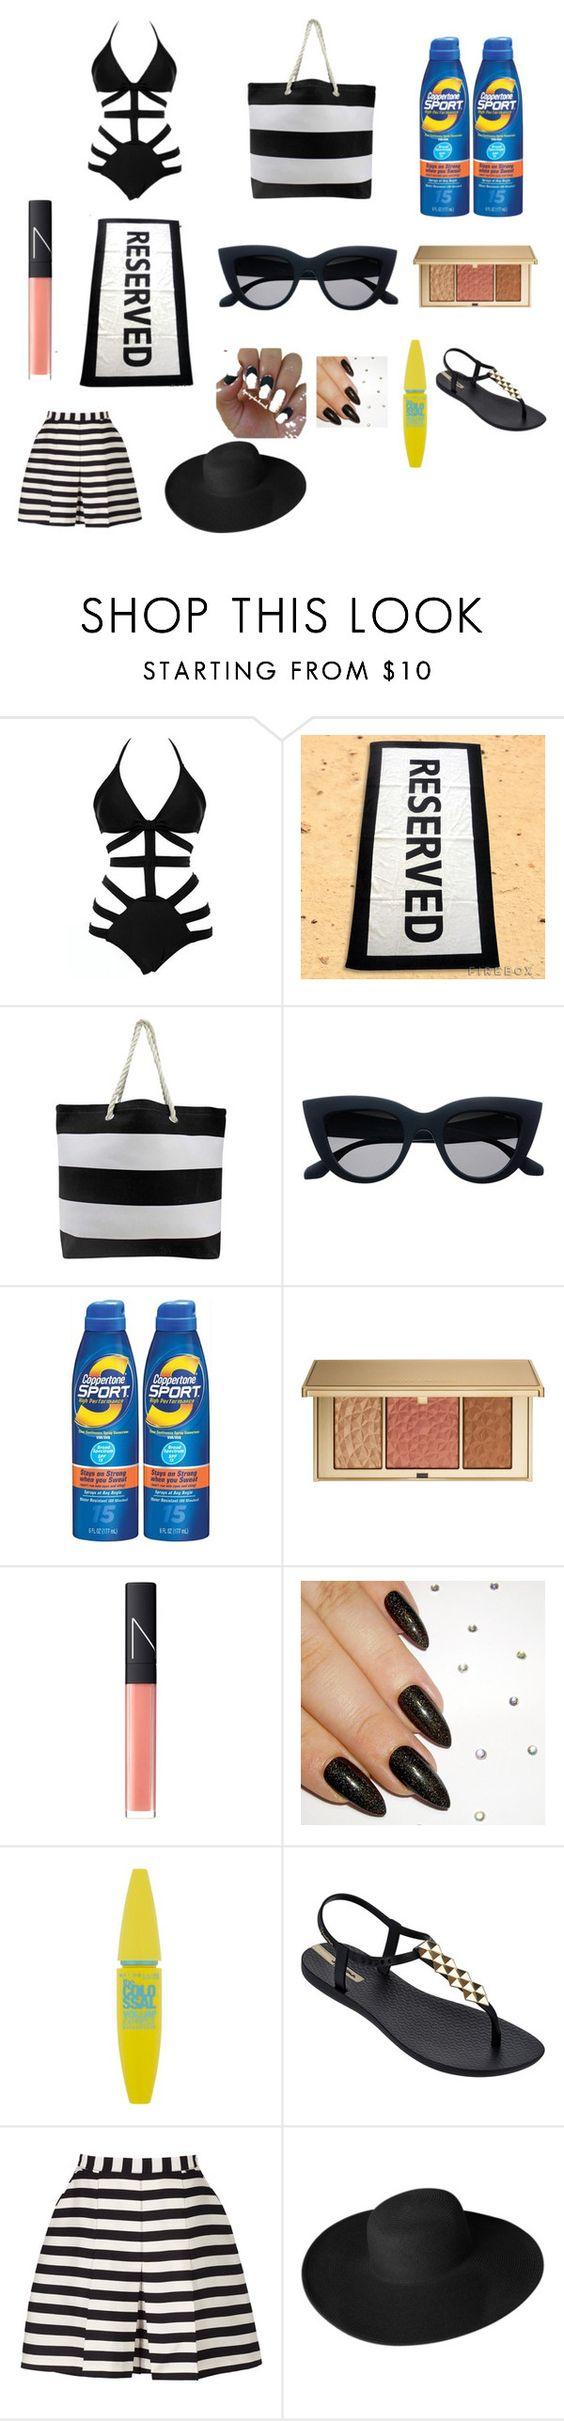 """my beach outfit flawless"" by beauty-663 on Polyvore featuring Coppertone, Estée Lauder, NARS Cosmetics, Maybelline, IPANEMA, Reiss and Dorfman Pacific"